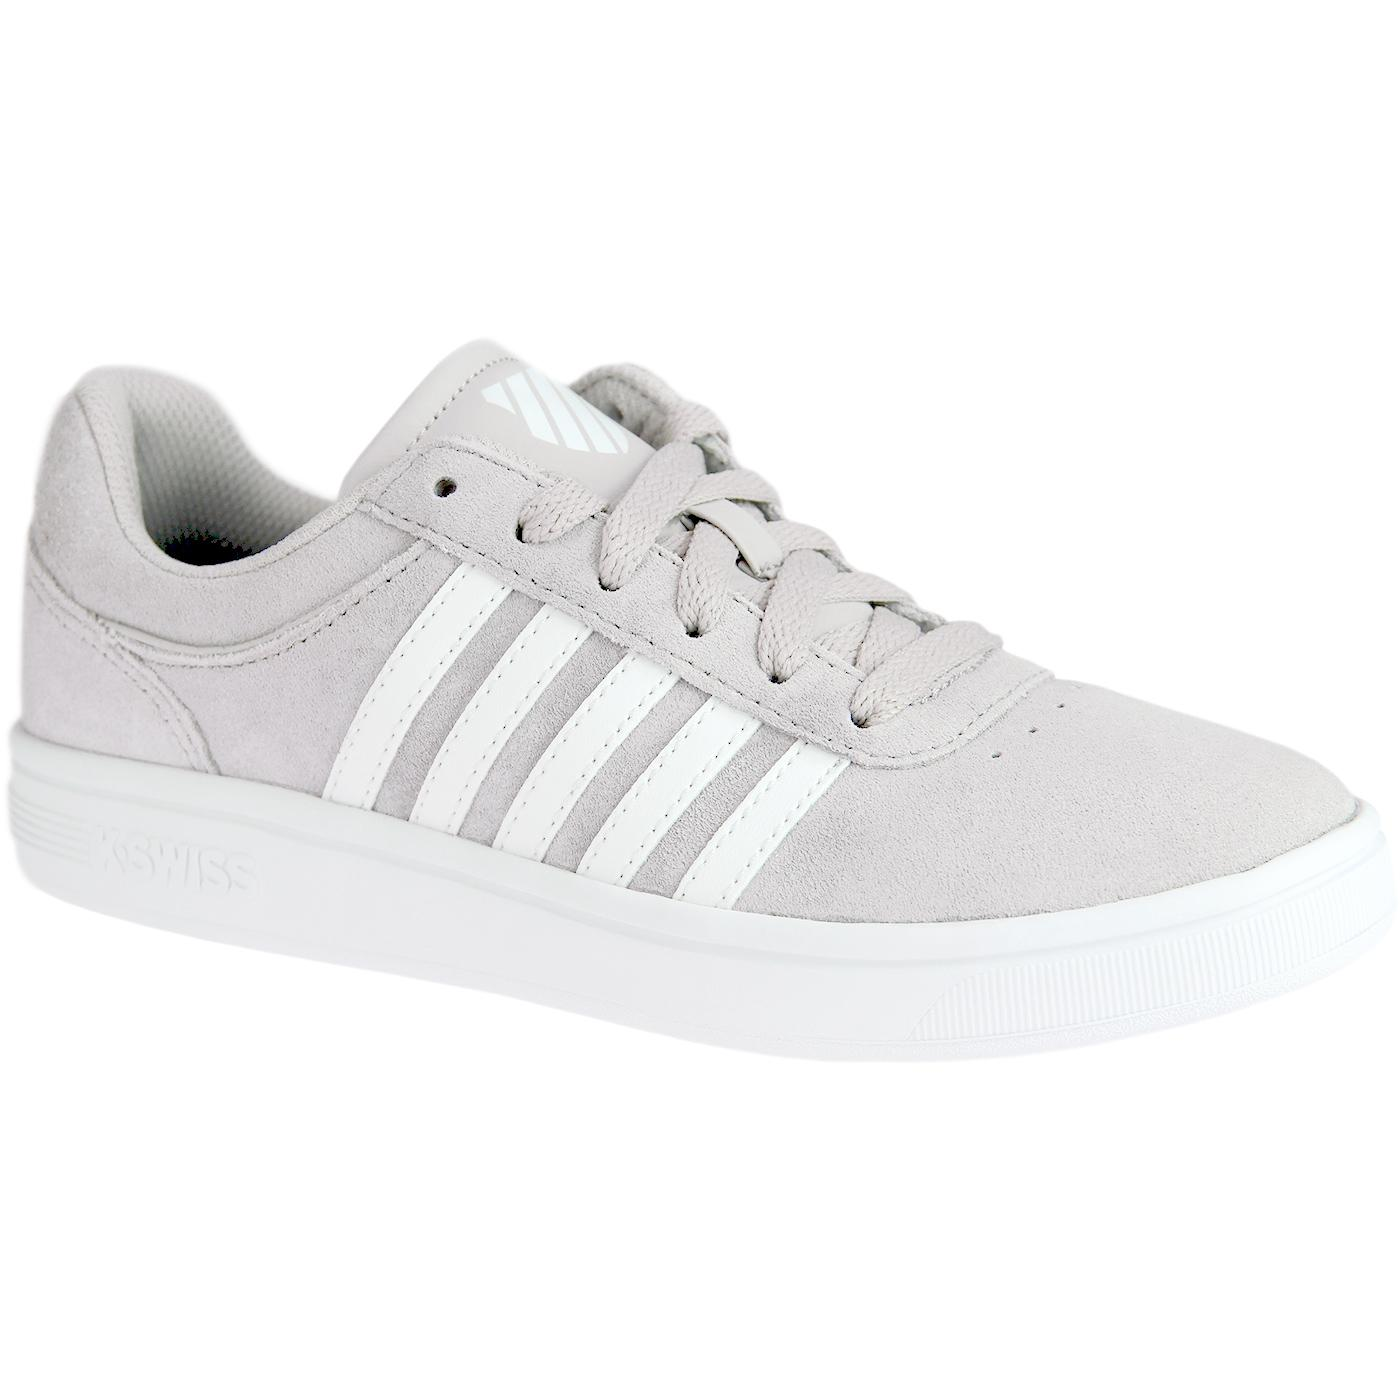 Court Cheswick K-SWISS Women's Suede Trainers WC/W